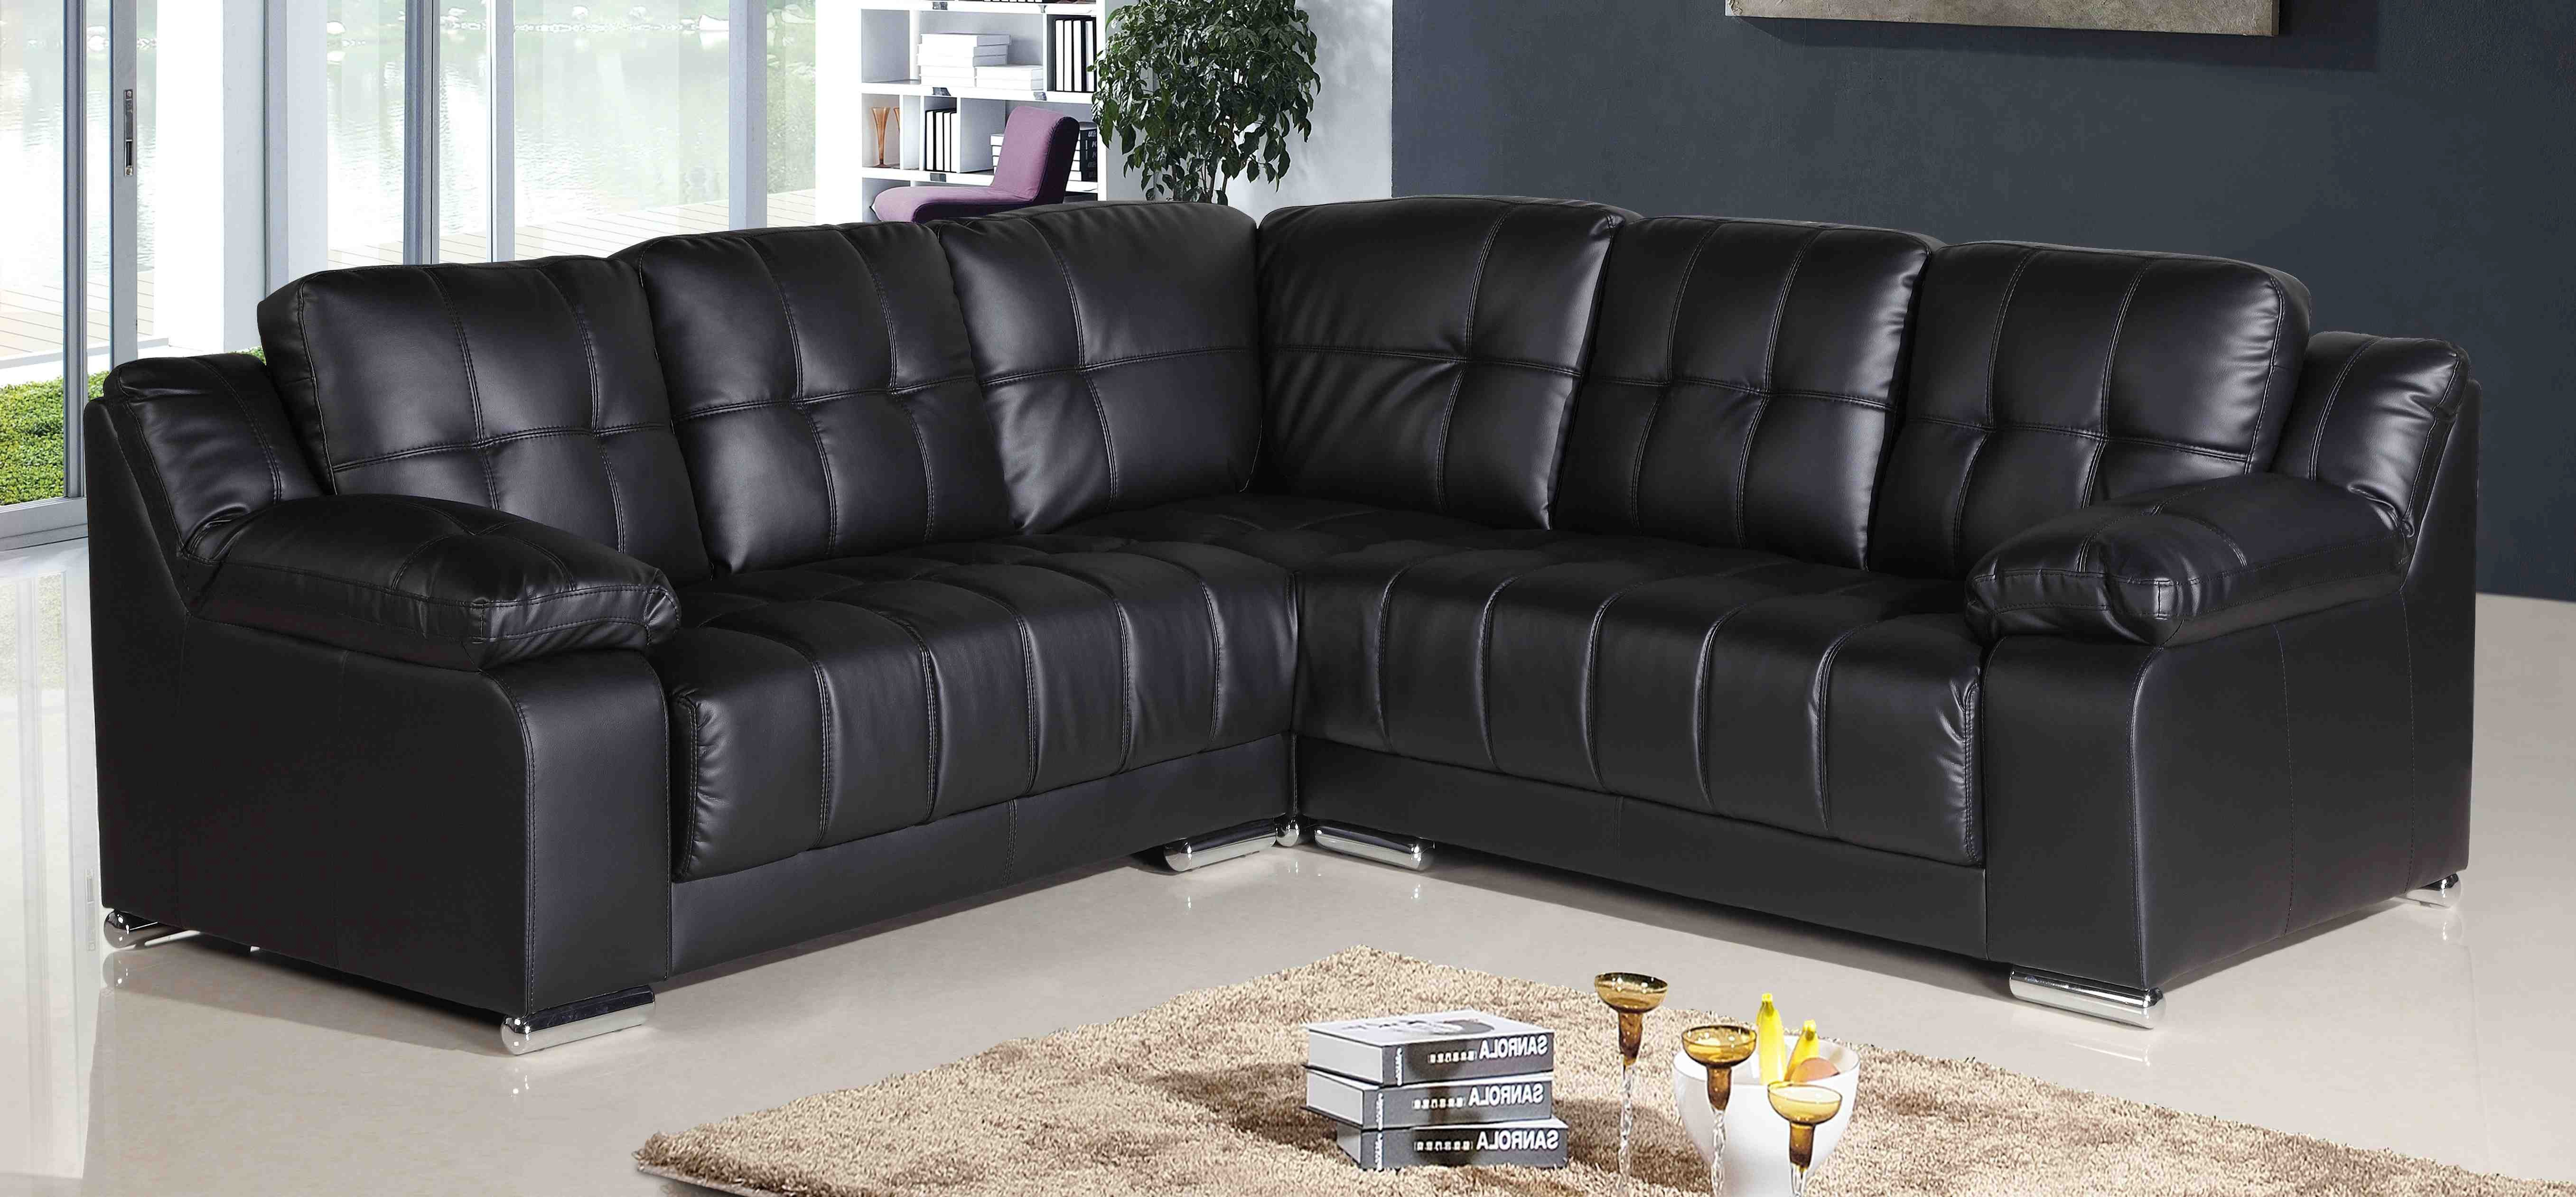 Sofa for Sale Awesome Cheap Leather Corner sofa for Sale London Black Leather sofa Corner Design